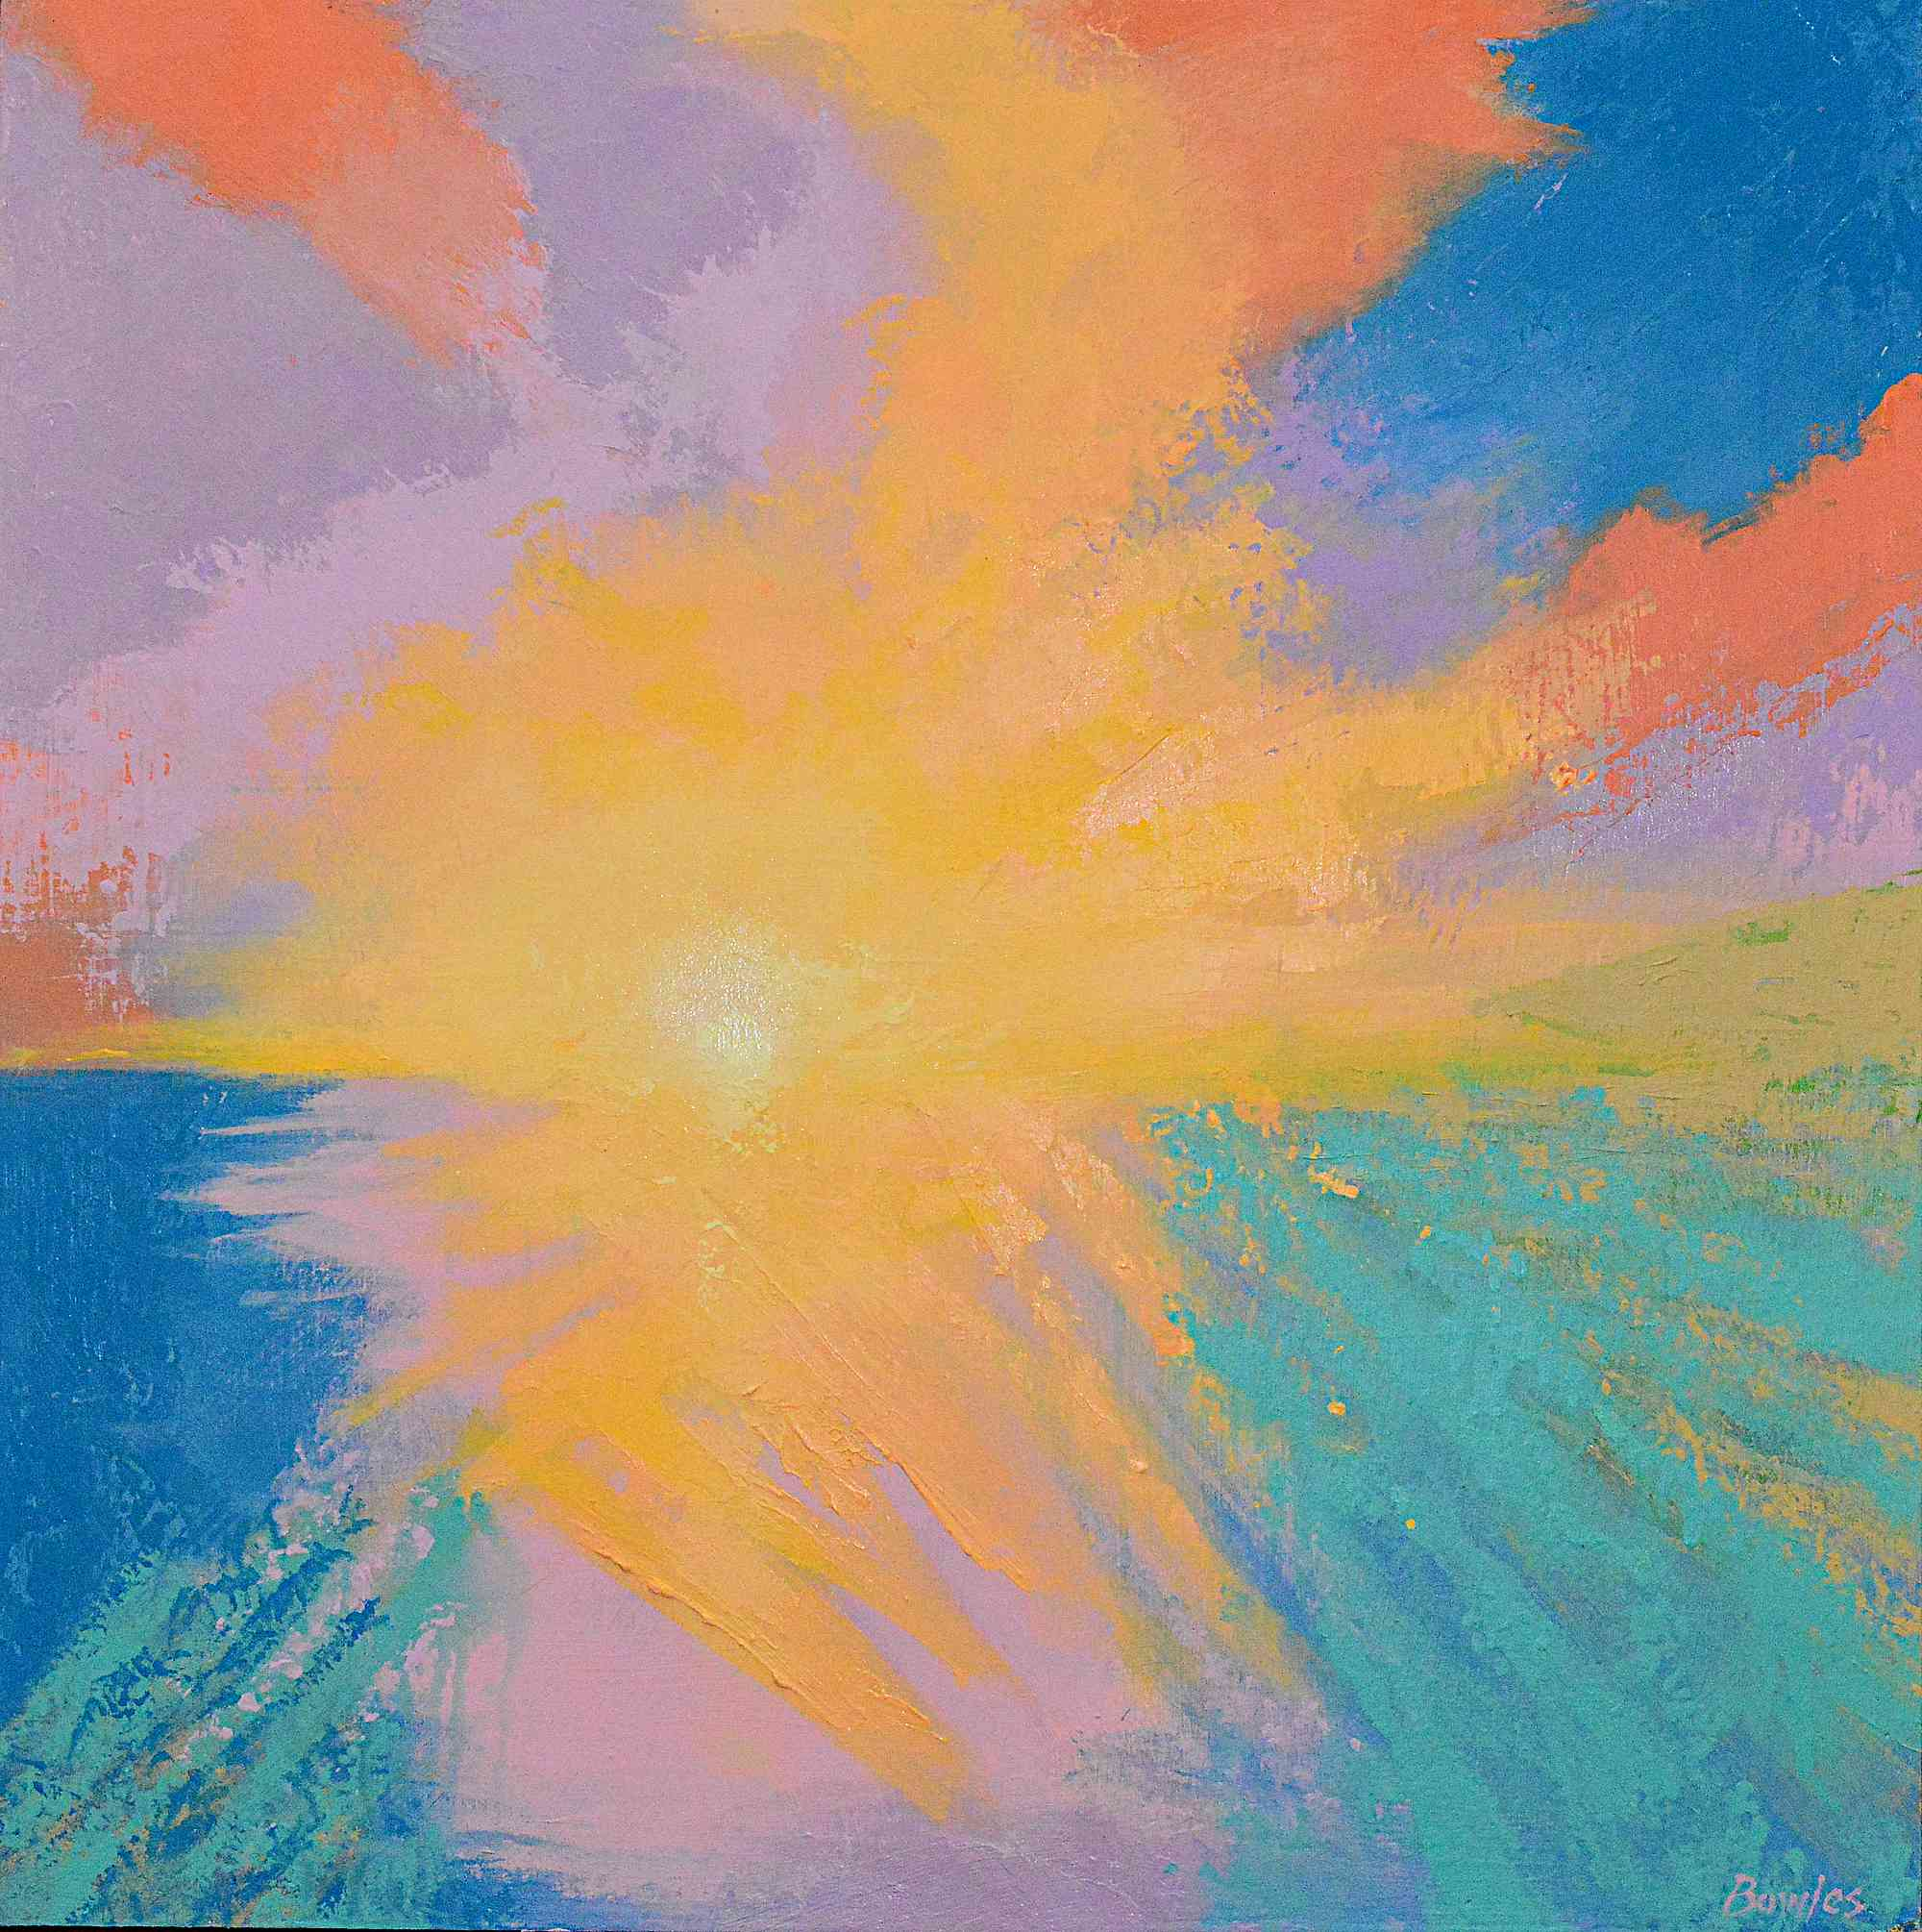 Sunrise Light - Original Painting, 24x24in.